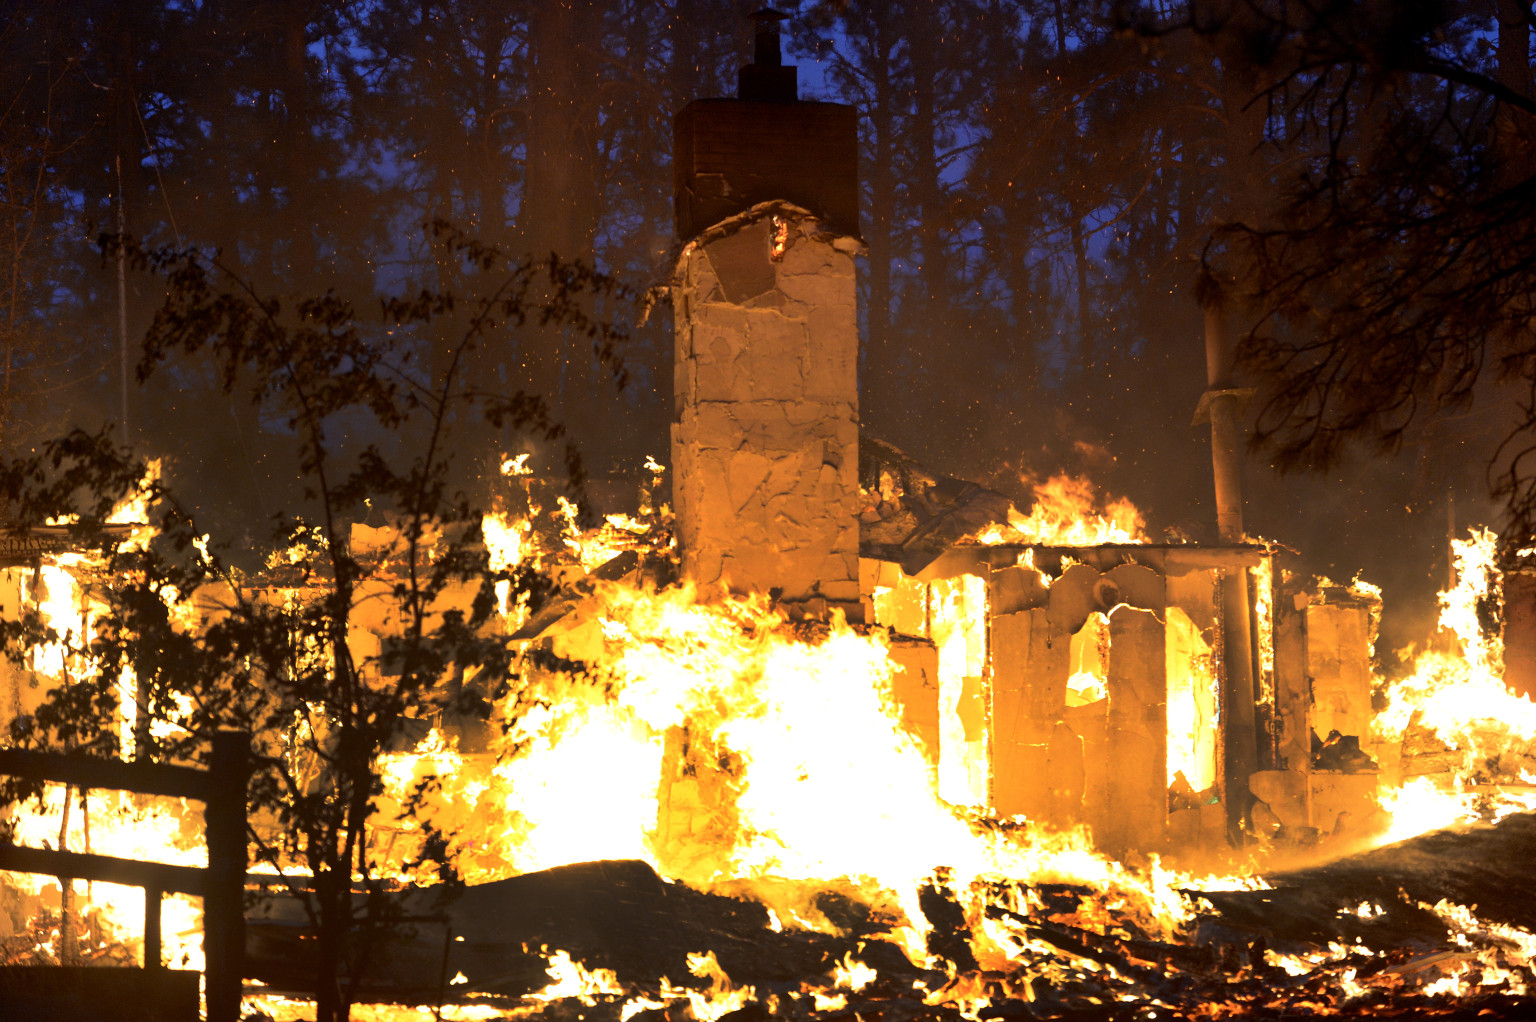 Denver Tax Rate >> Black Forest Fire Destroyed 486 Homes, Caused More Than $85 Million In Damage